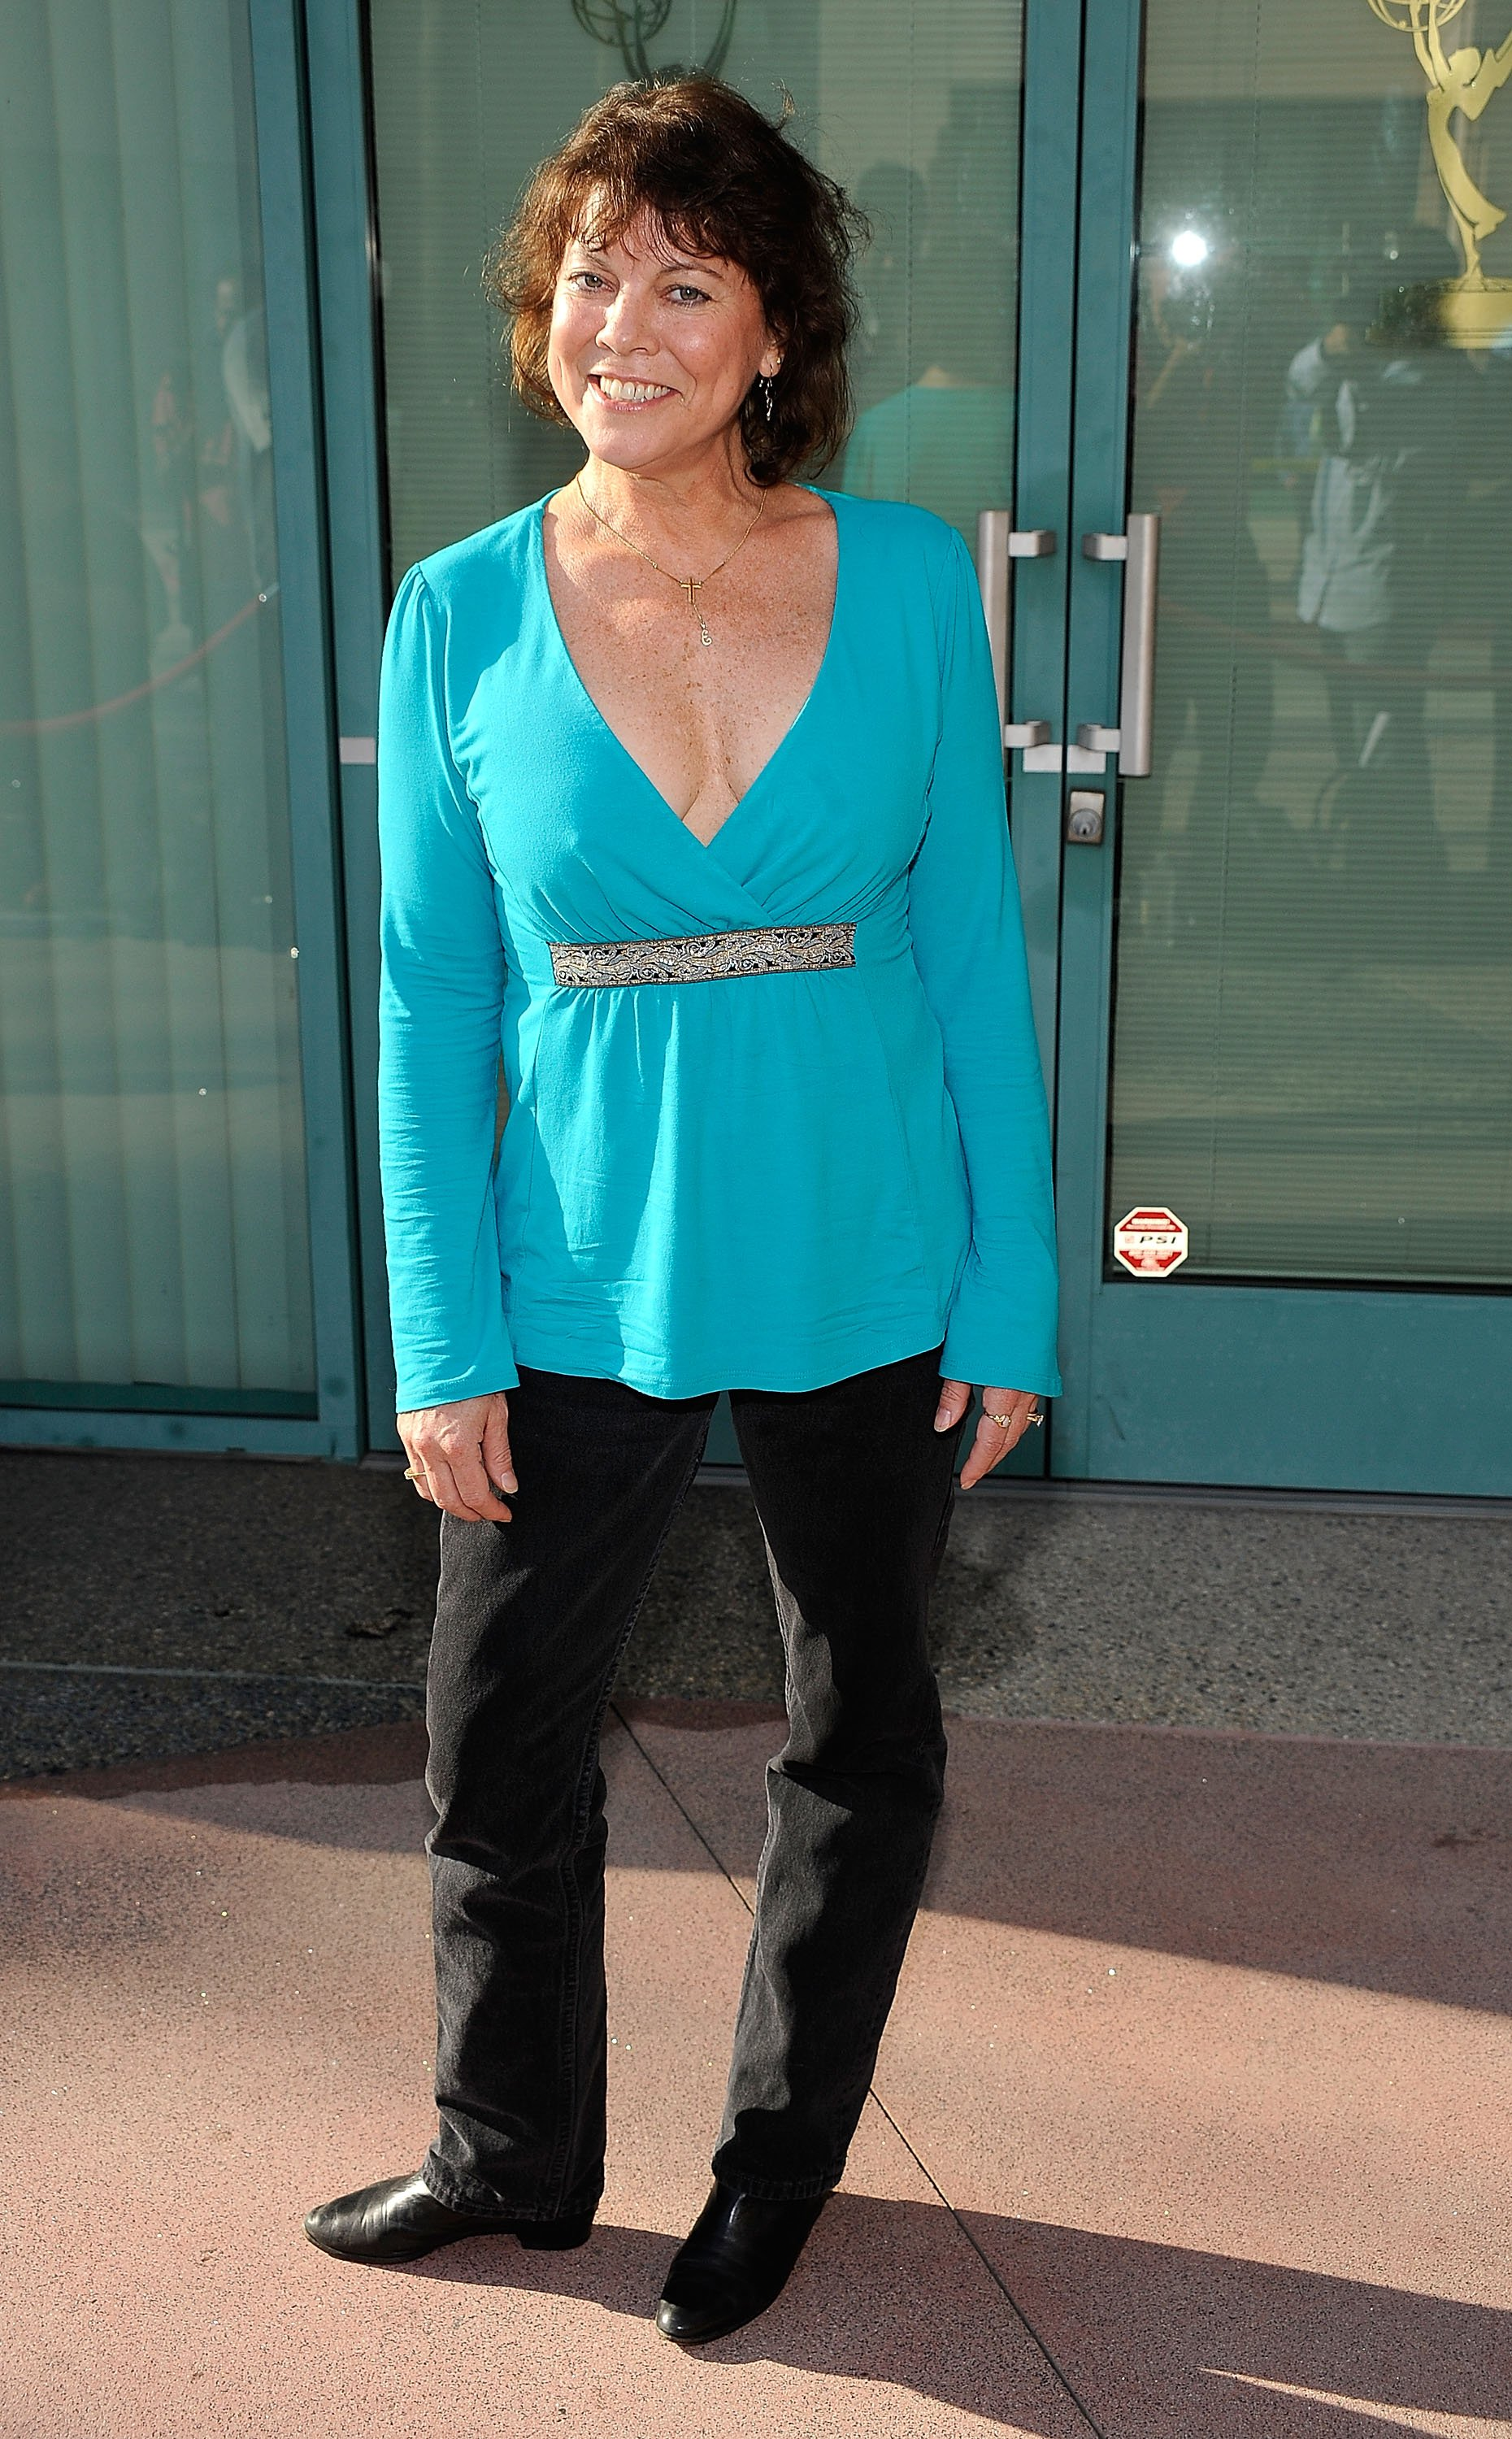 Image Source: Getty Images | Erin Moran posing for the camera